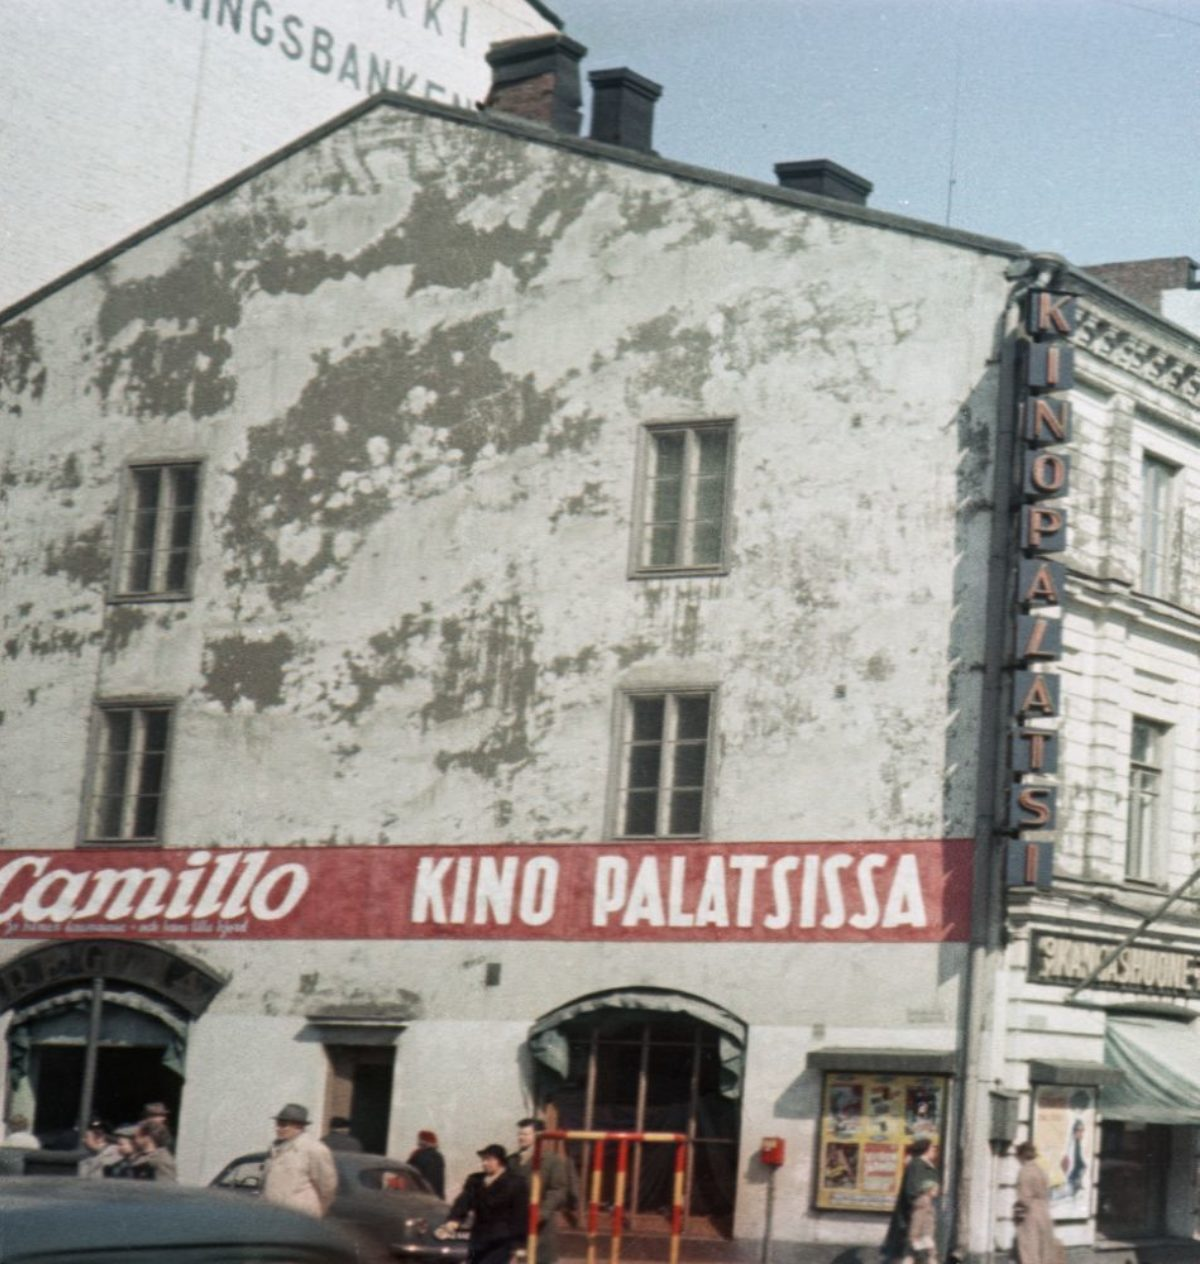 A film advertisement painted on the wall of Kino-Palatsi cinema for Le Retour de Don Camillo screened in 1954. The building was demolished in 1965. Photo: Aukusti Tuhka / Picture Collections of the Finnish Heritage Agency